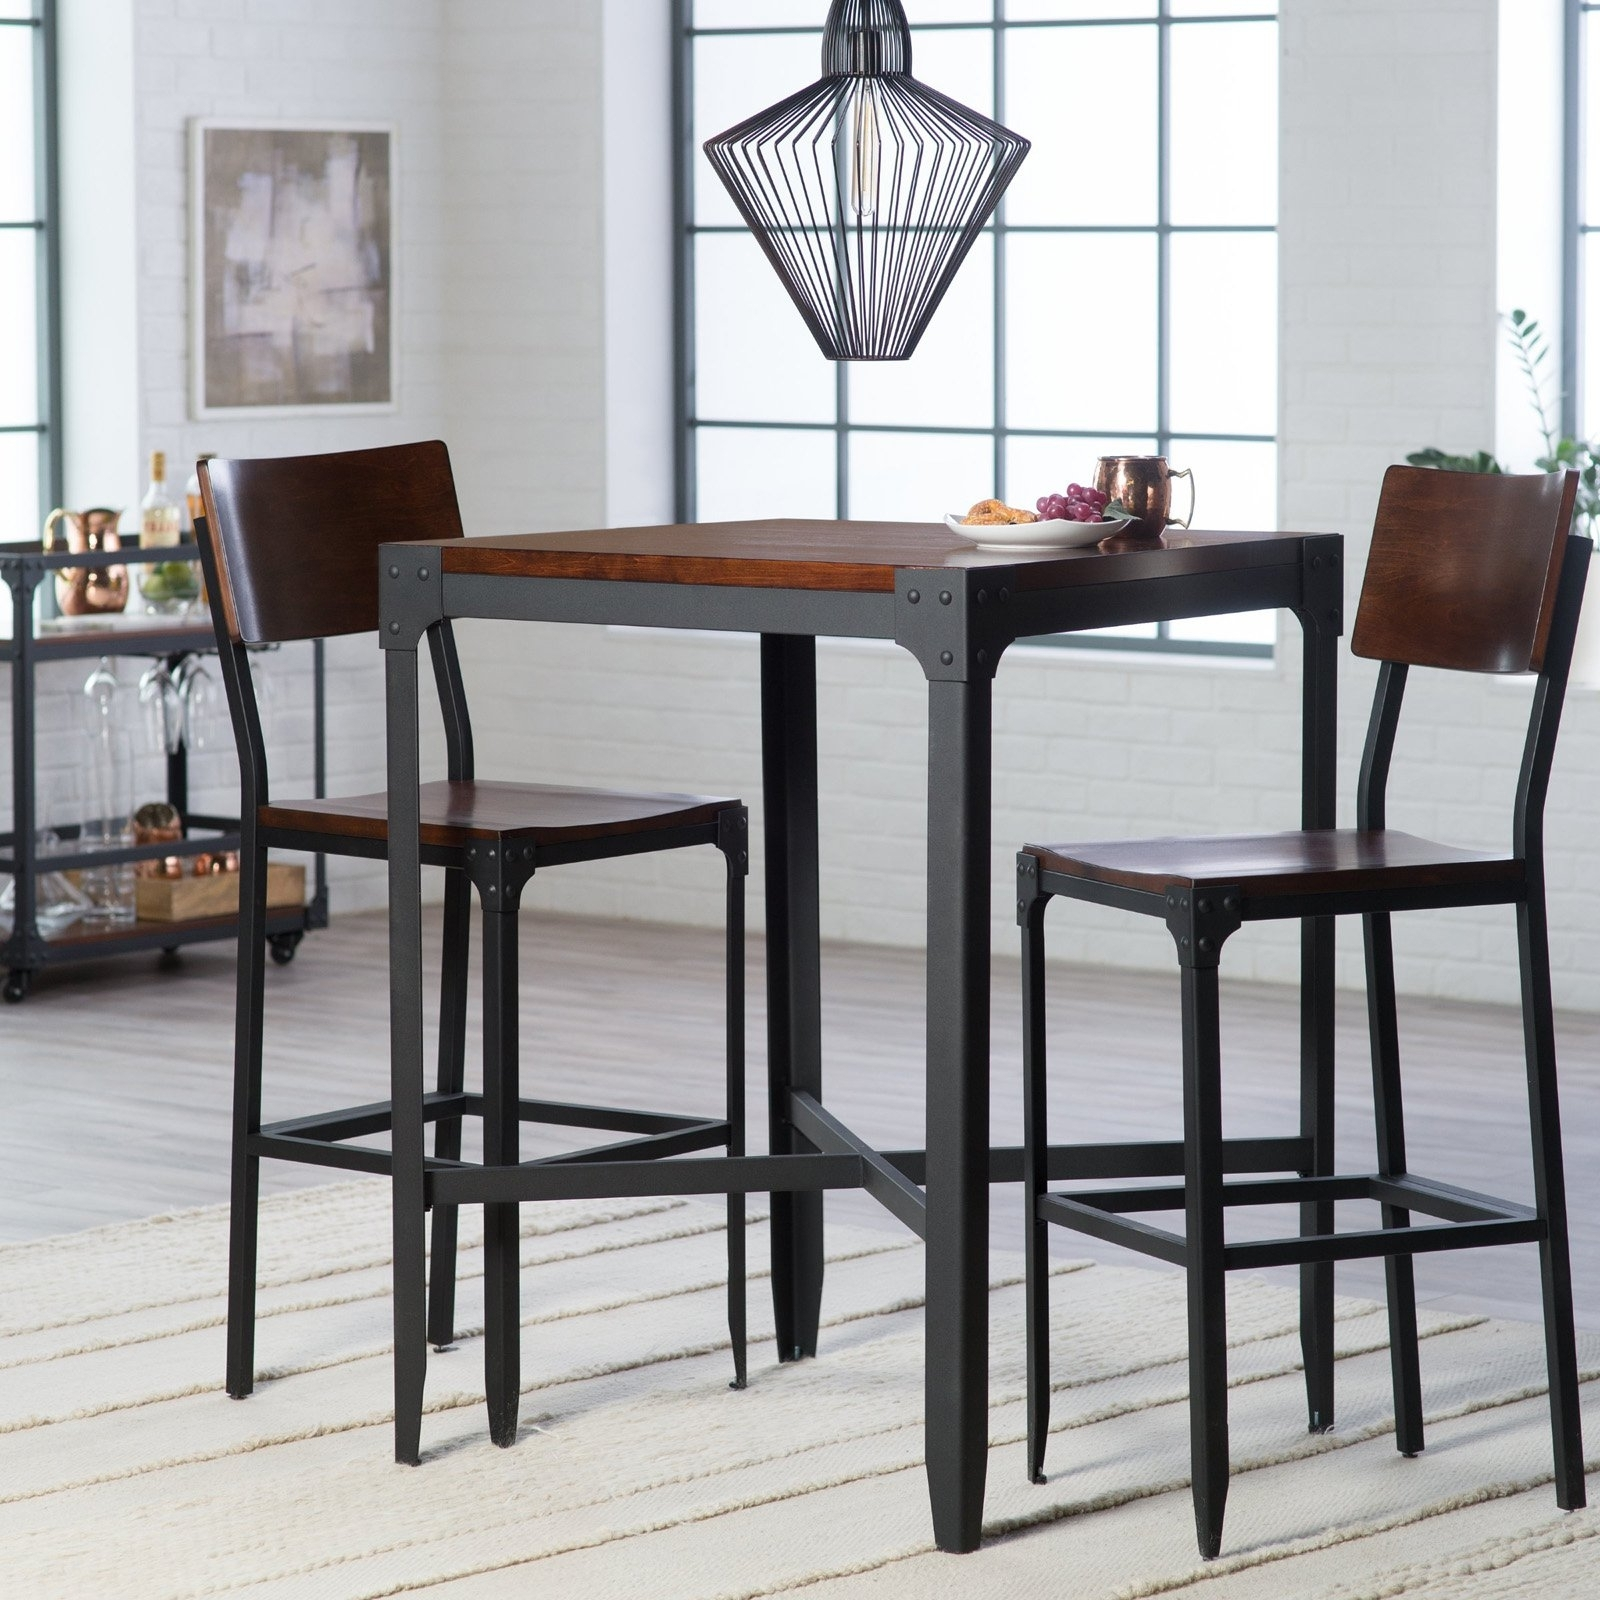 Recent 54 Bar Height Pub Table Sets, Small Dining Tables For 2 Our Top 6 Intended For Palazzo 3 Piece Dining Table Sets (View 18 of 25)